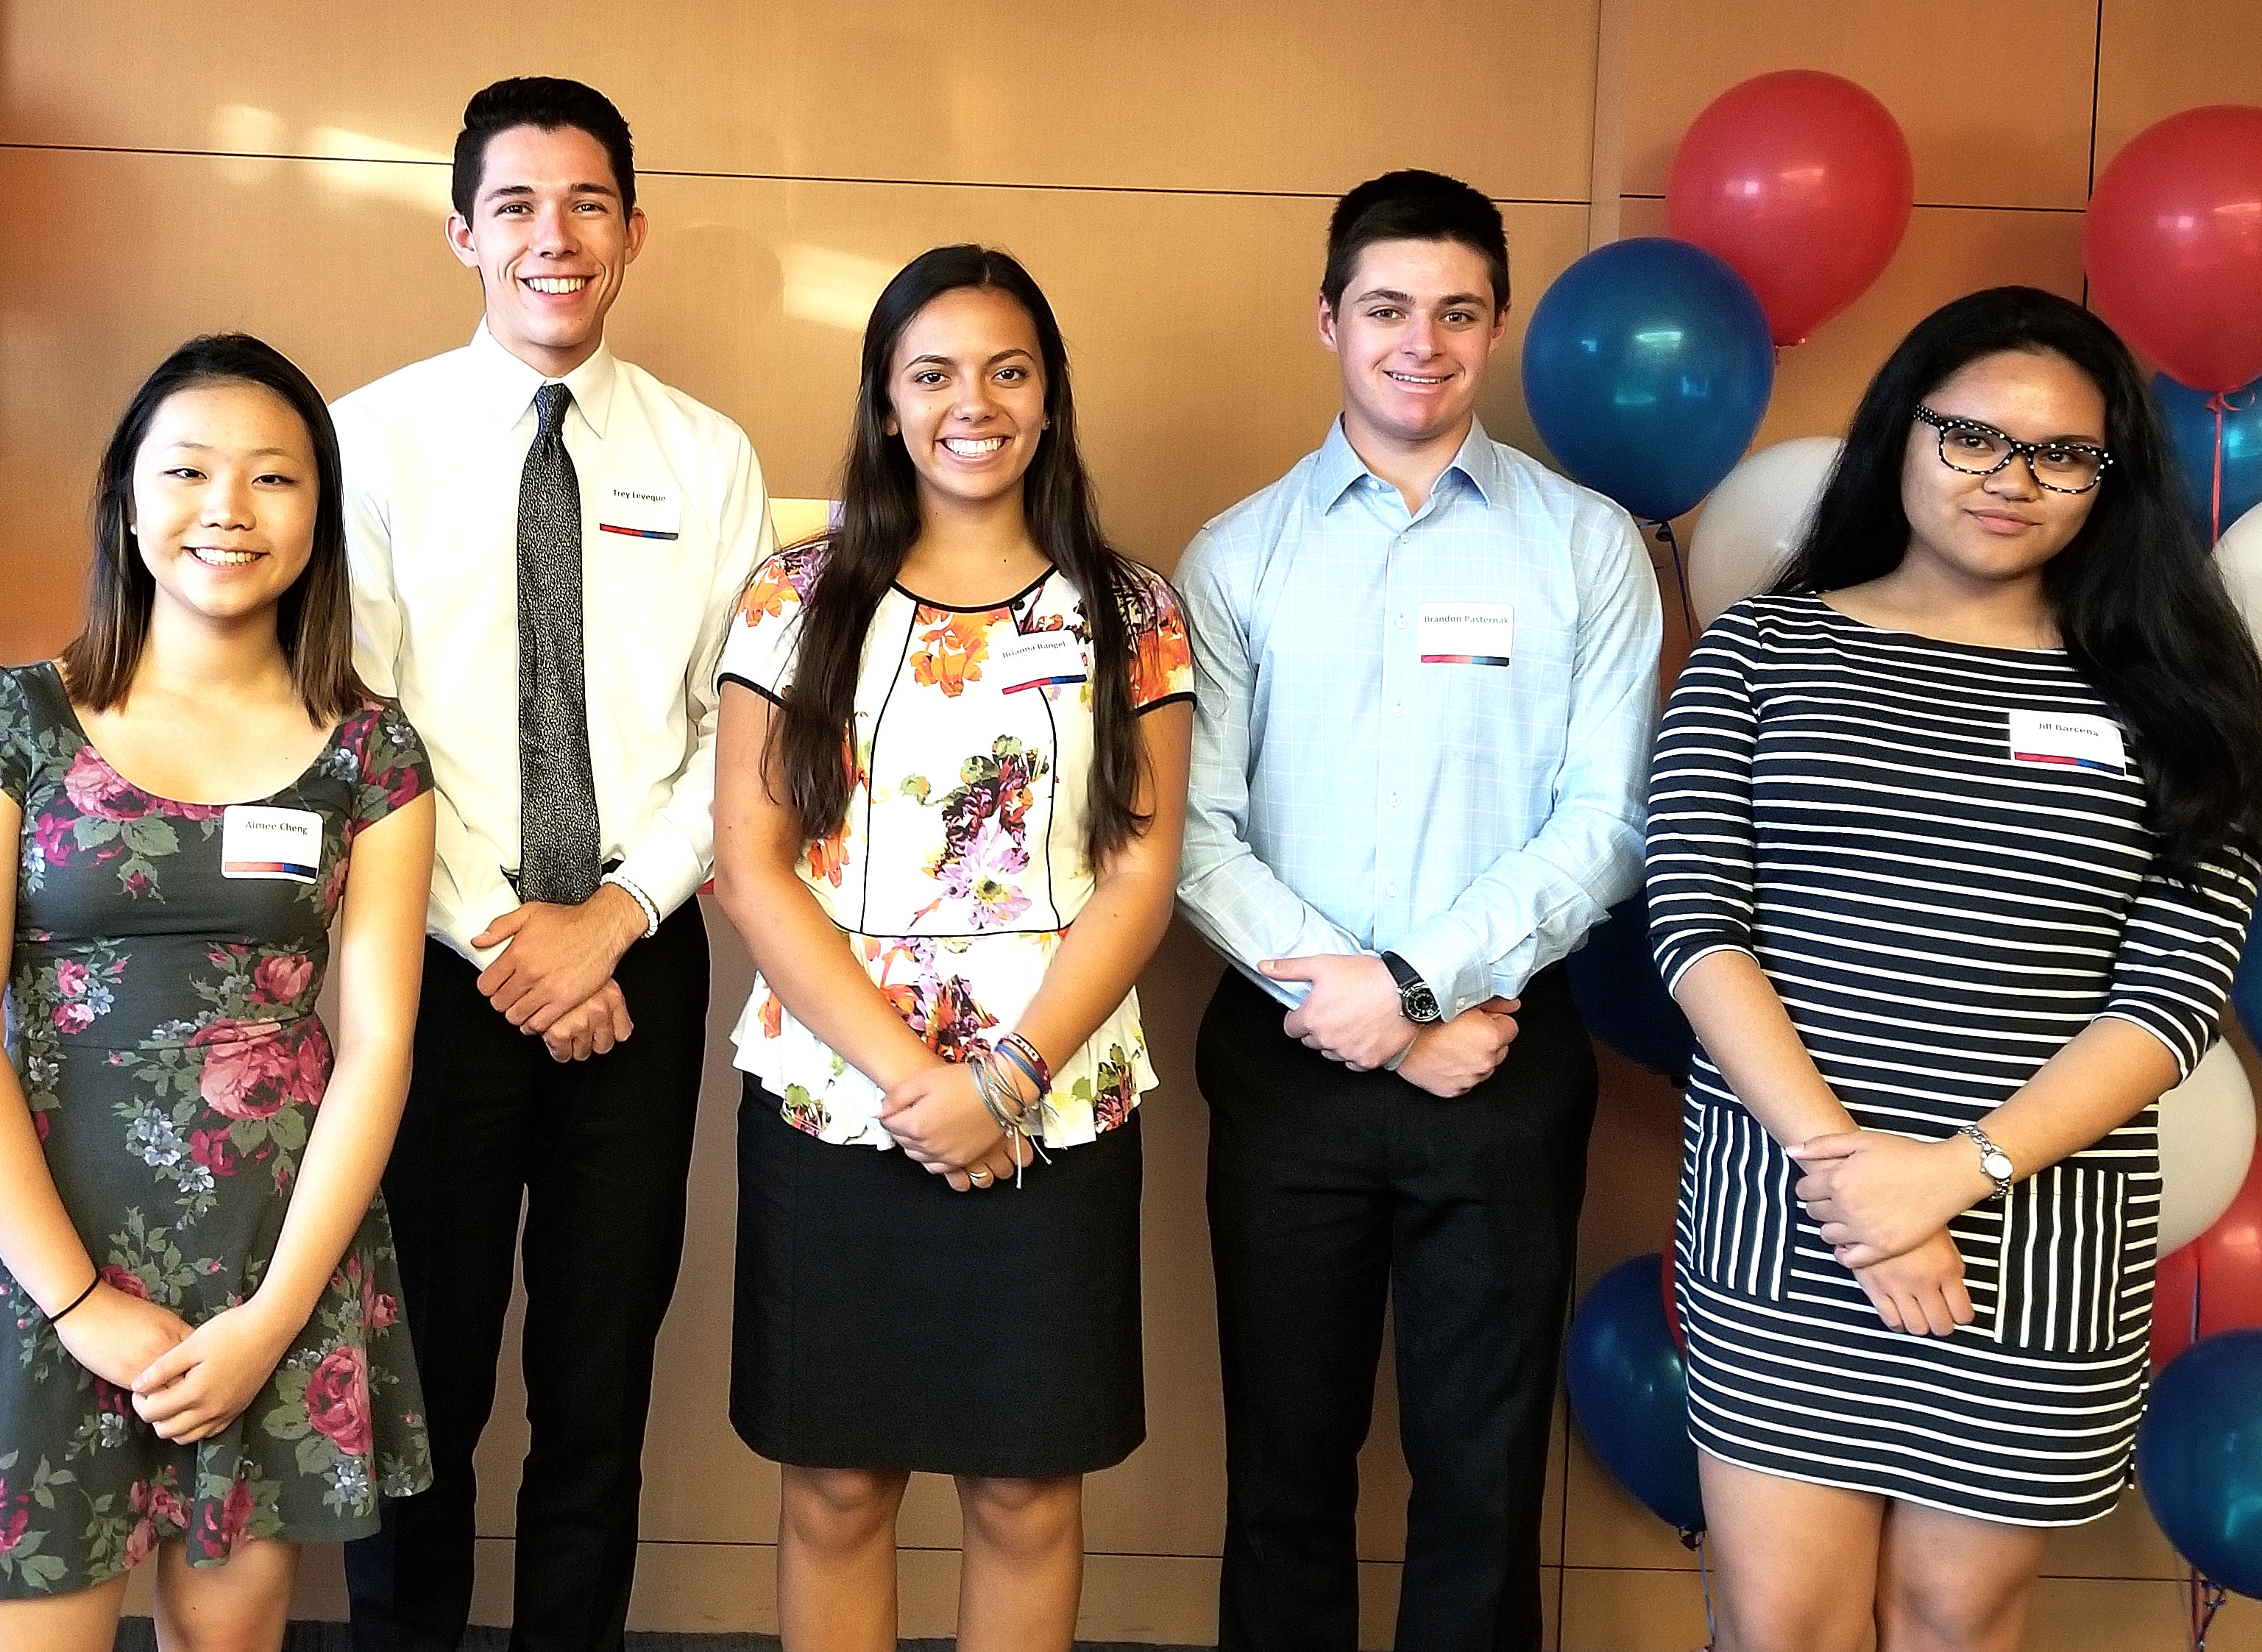 Bank Of America Today Announced That Five High School Juniors And Seniors From The Phoenix Metro Area Have Been Selected As Student Leaders. They Are From Left To Right: Aimee Cheng, Trey Leveque, Brianna Rangel, Brandon Pasternak, And Jill Barcena. Photo Courtesy Of Bank Of America